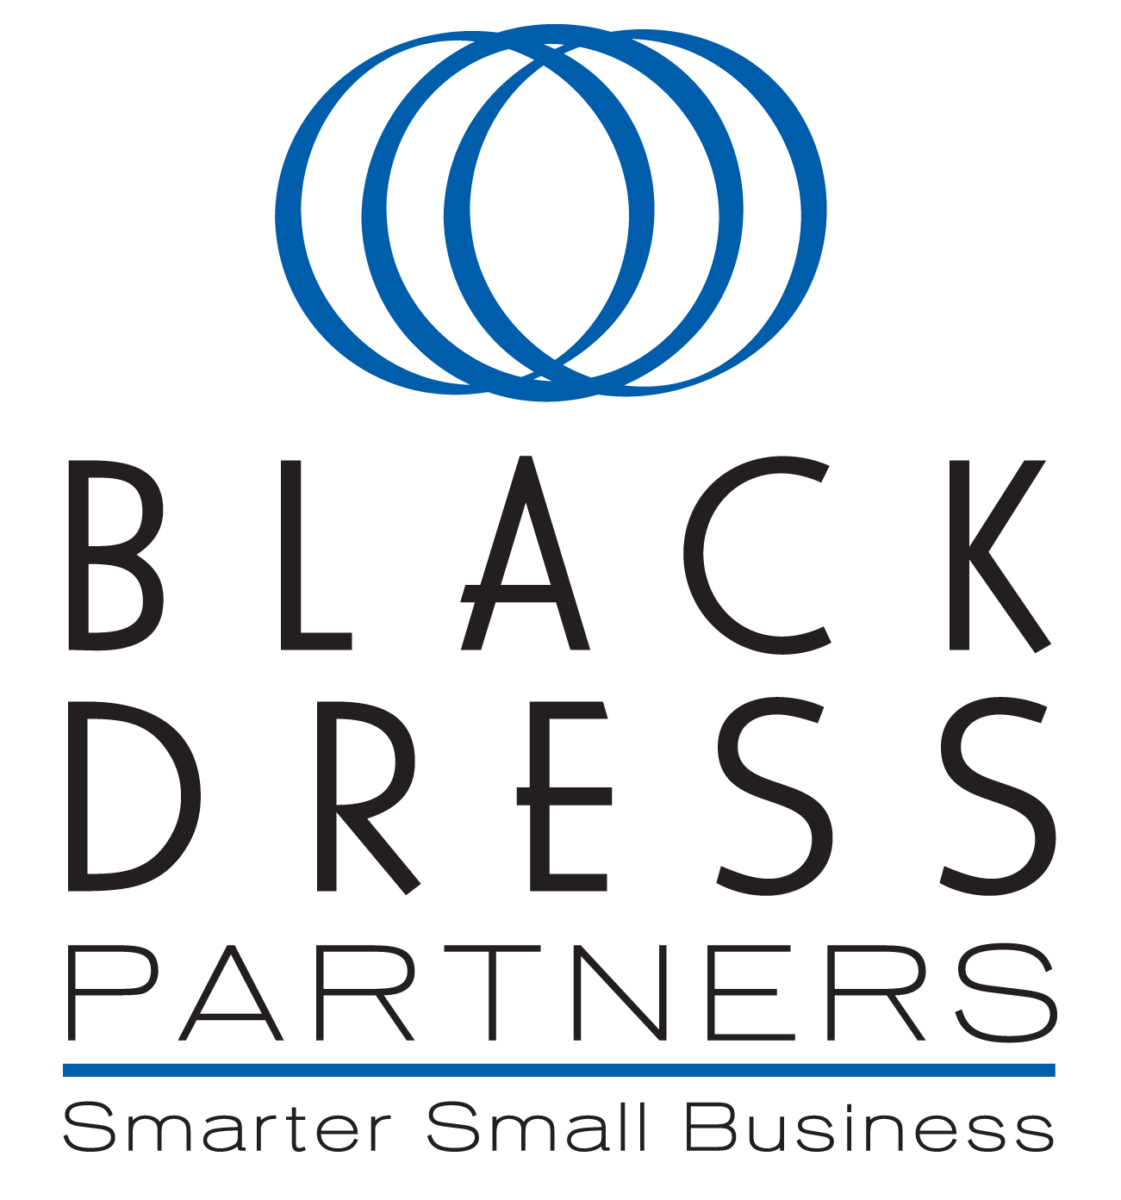 Black Dress Partnership